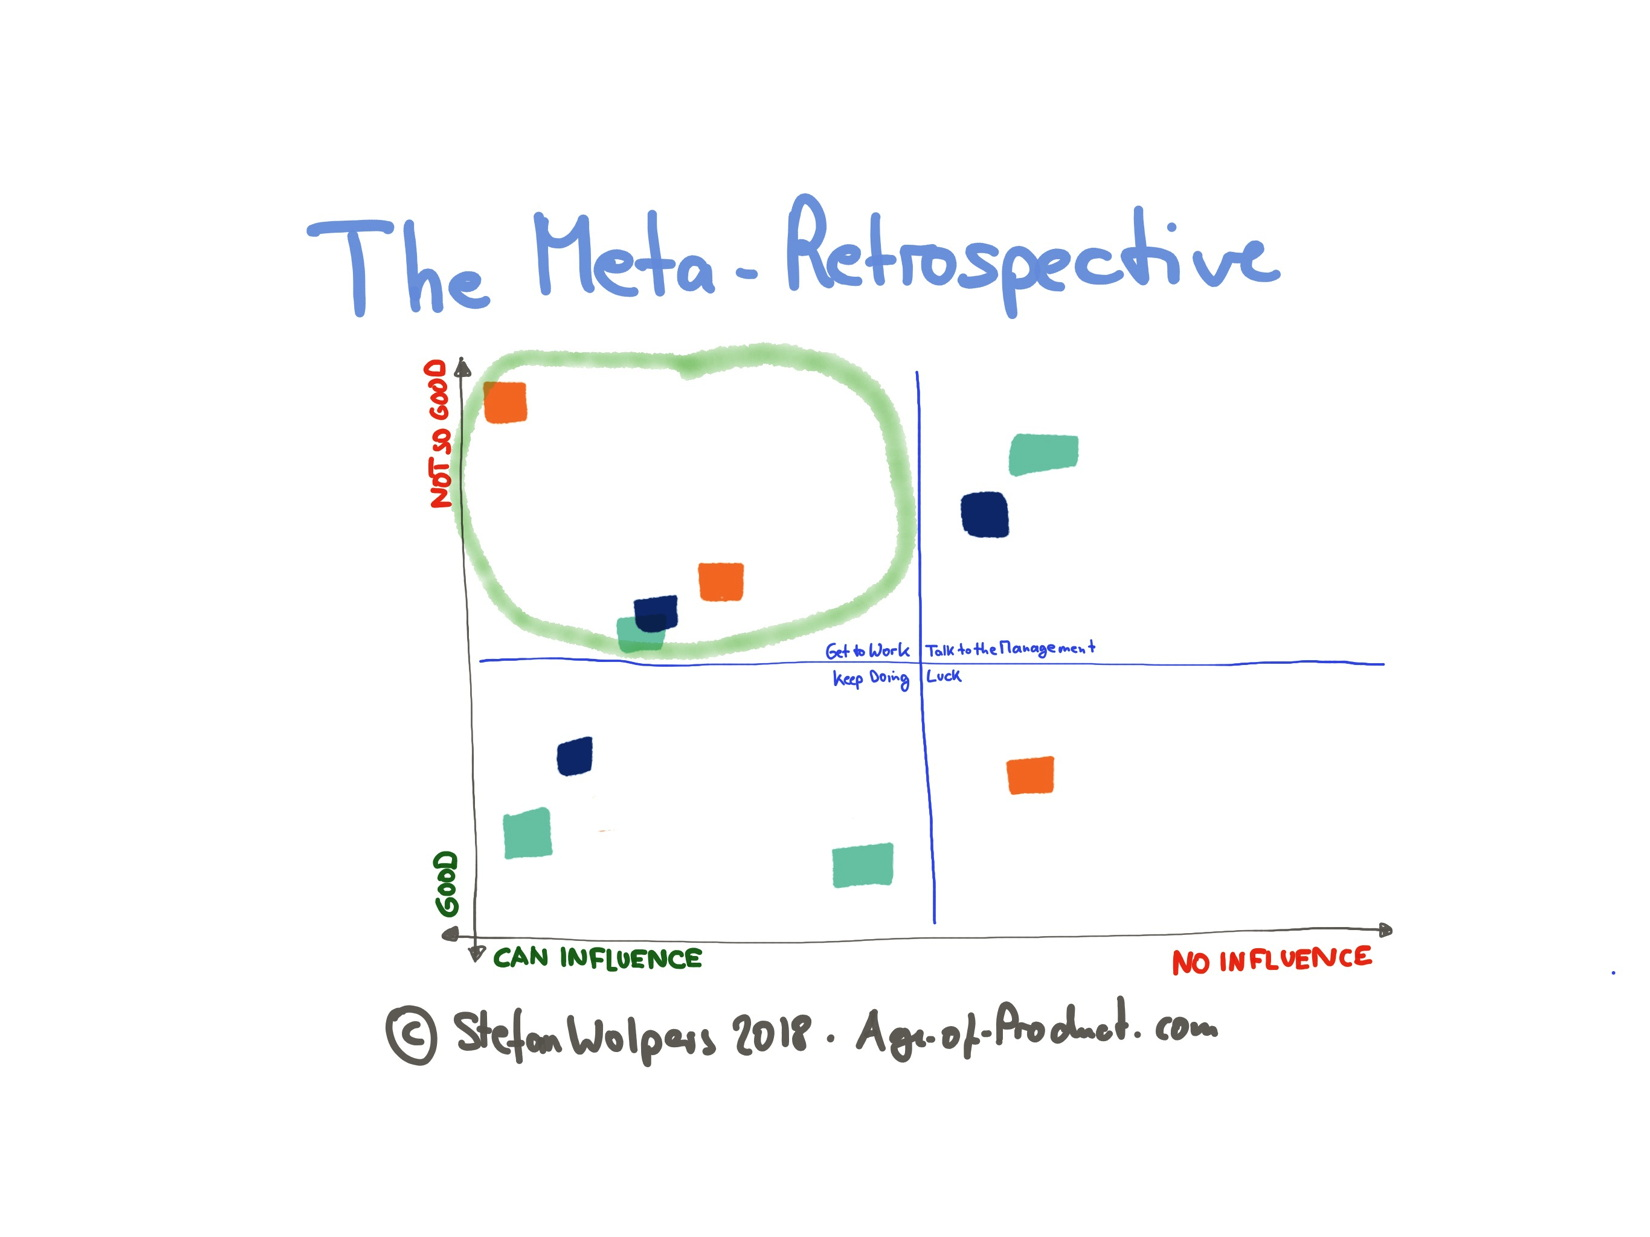 The Meta-Retrospective with Stakeholders